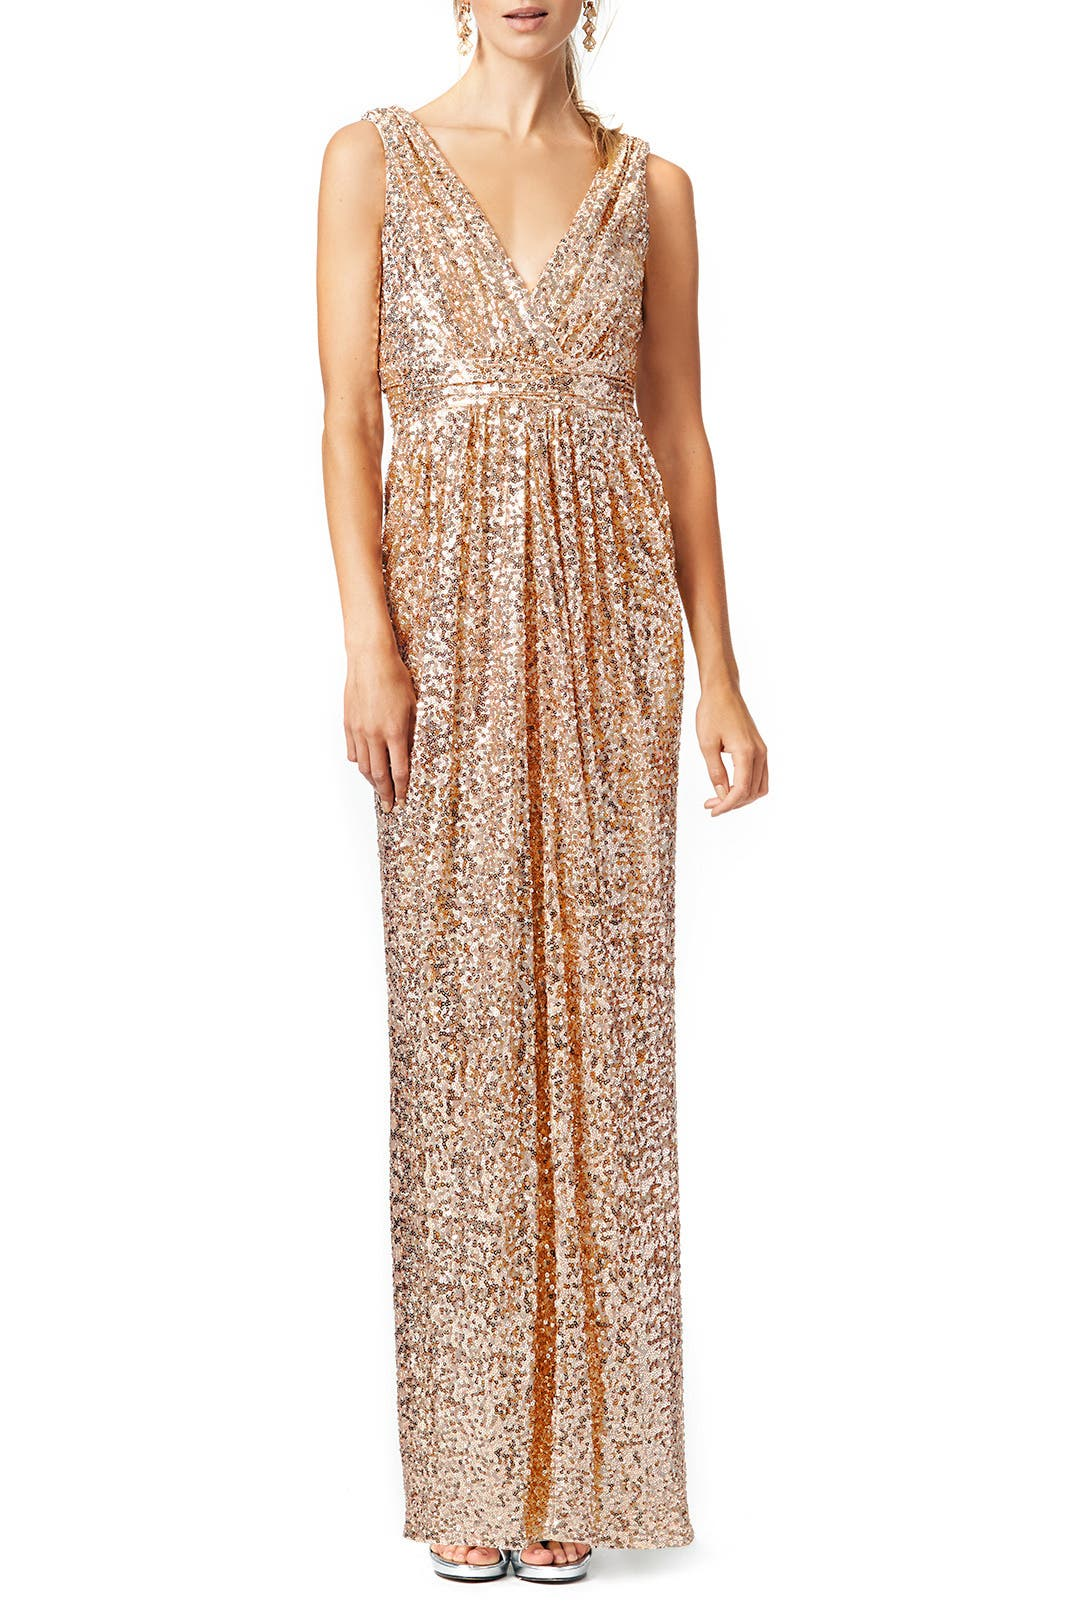 Glitz Gown by Badgley Mischka